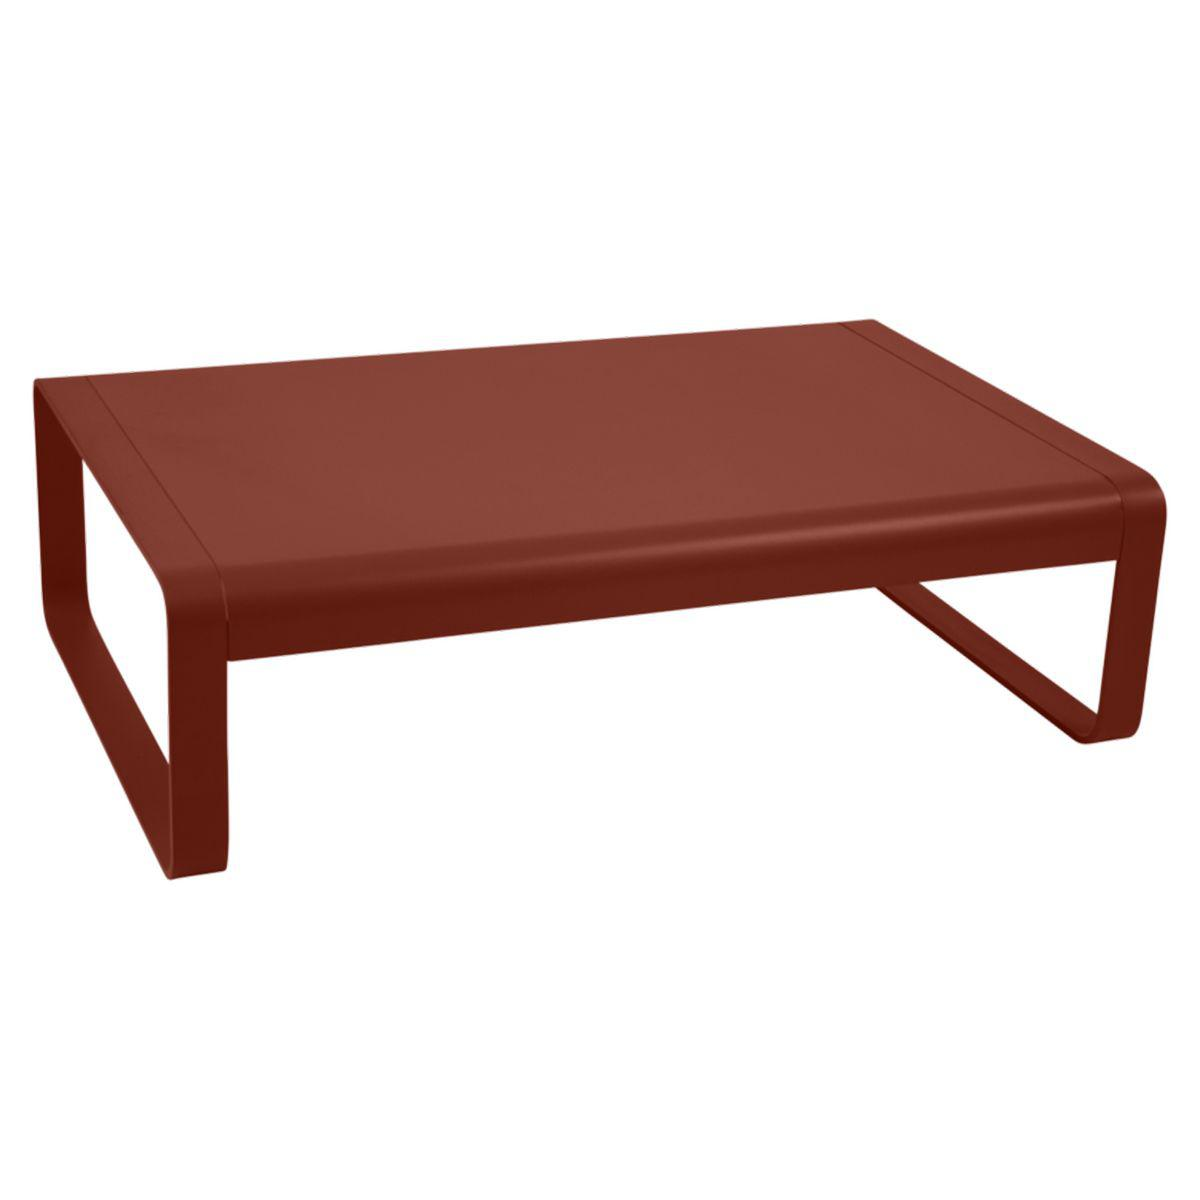 Table basse BELLEVIE Fermob rouge ocre